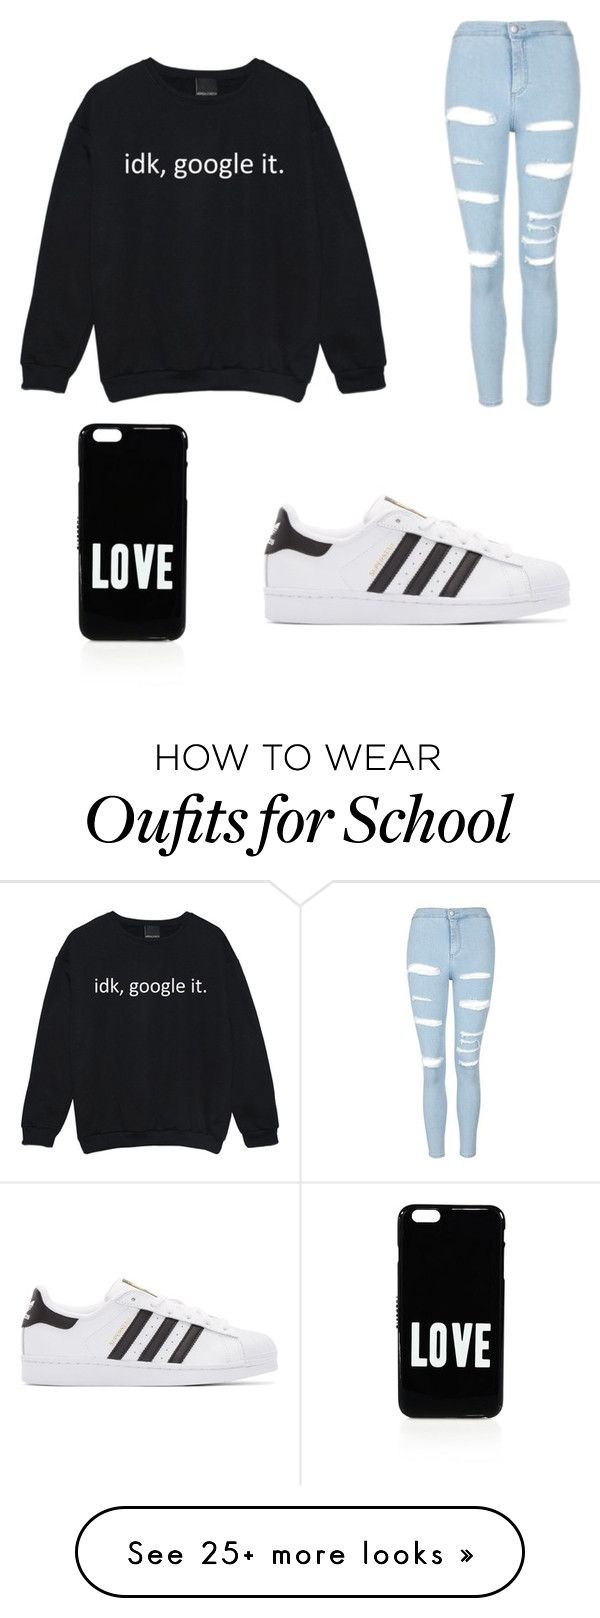 """""""School Outfit"""" by chloegabrielleeee on Polyvore featuring Topshop, adidas Originals and Givenchy"""